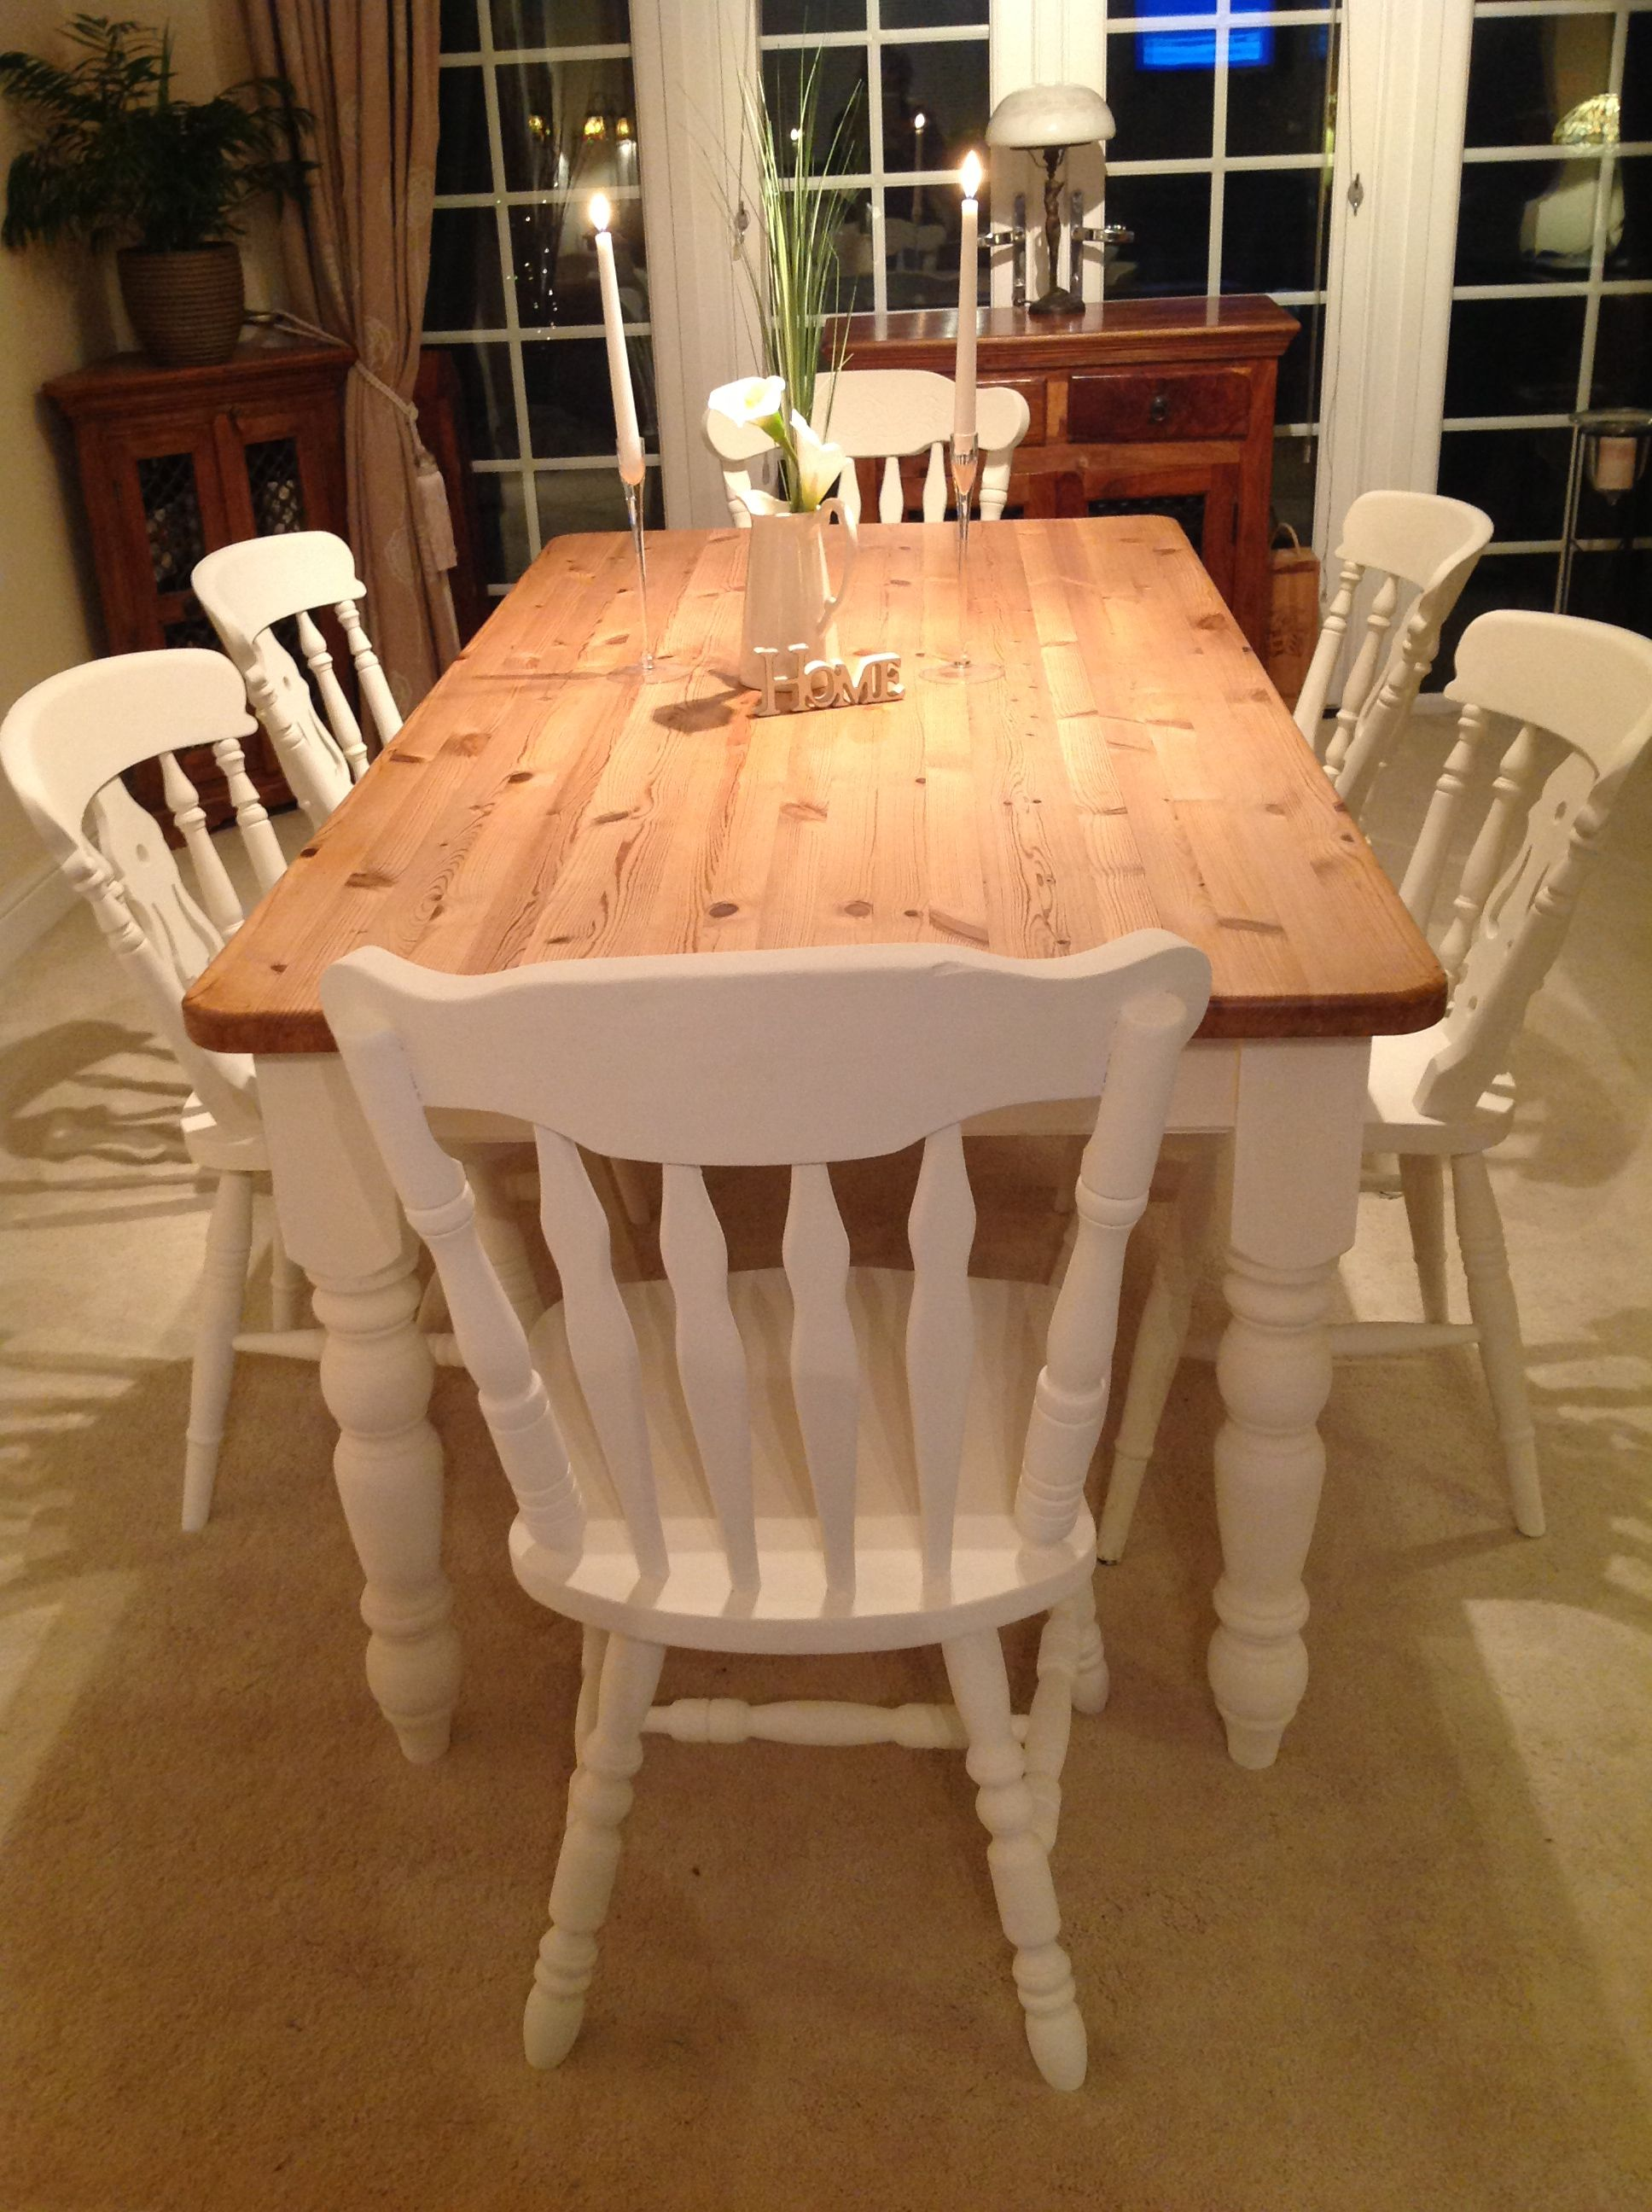 Painted farmhouse table and chairs - Farmhouse Table And Chairs Painted In Annie Sloan Old White